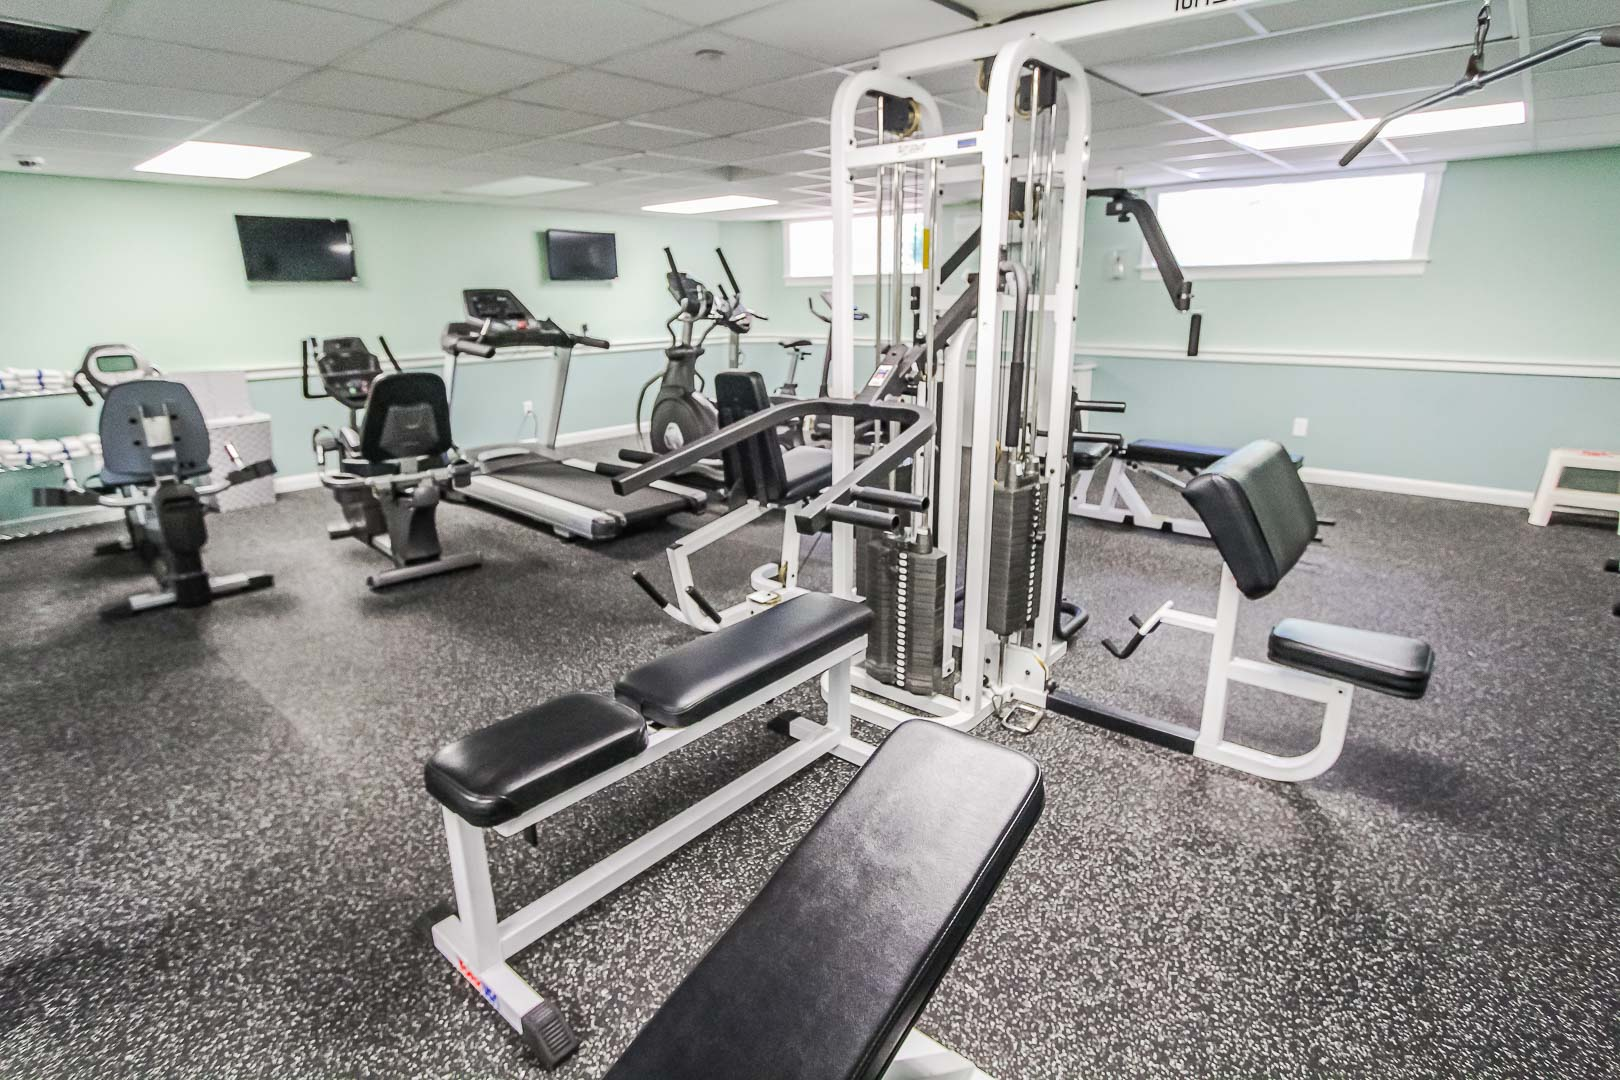 An expansive fitness center at VRI's Holly Tree Resort in Massachusetts.